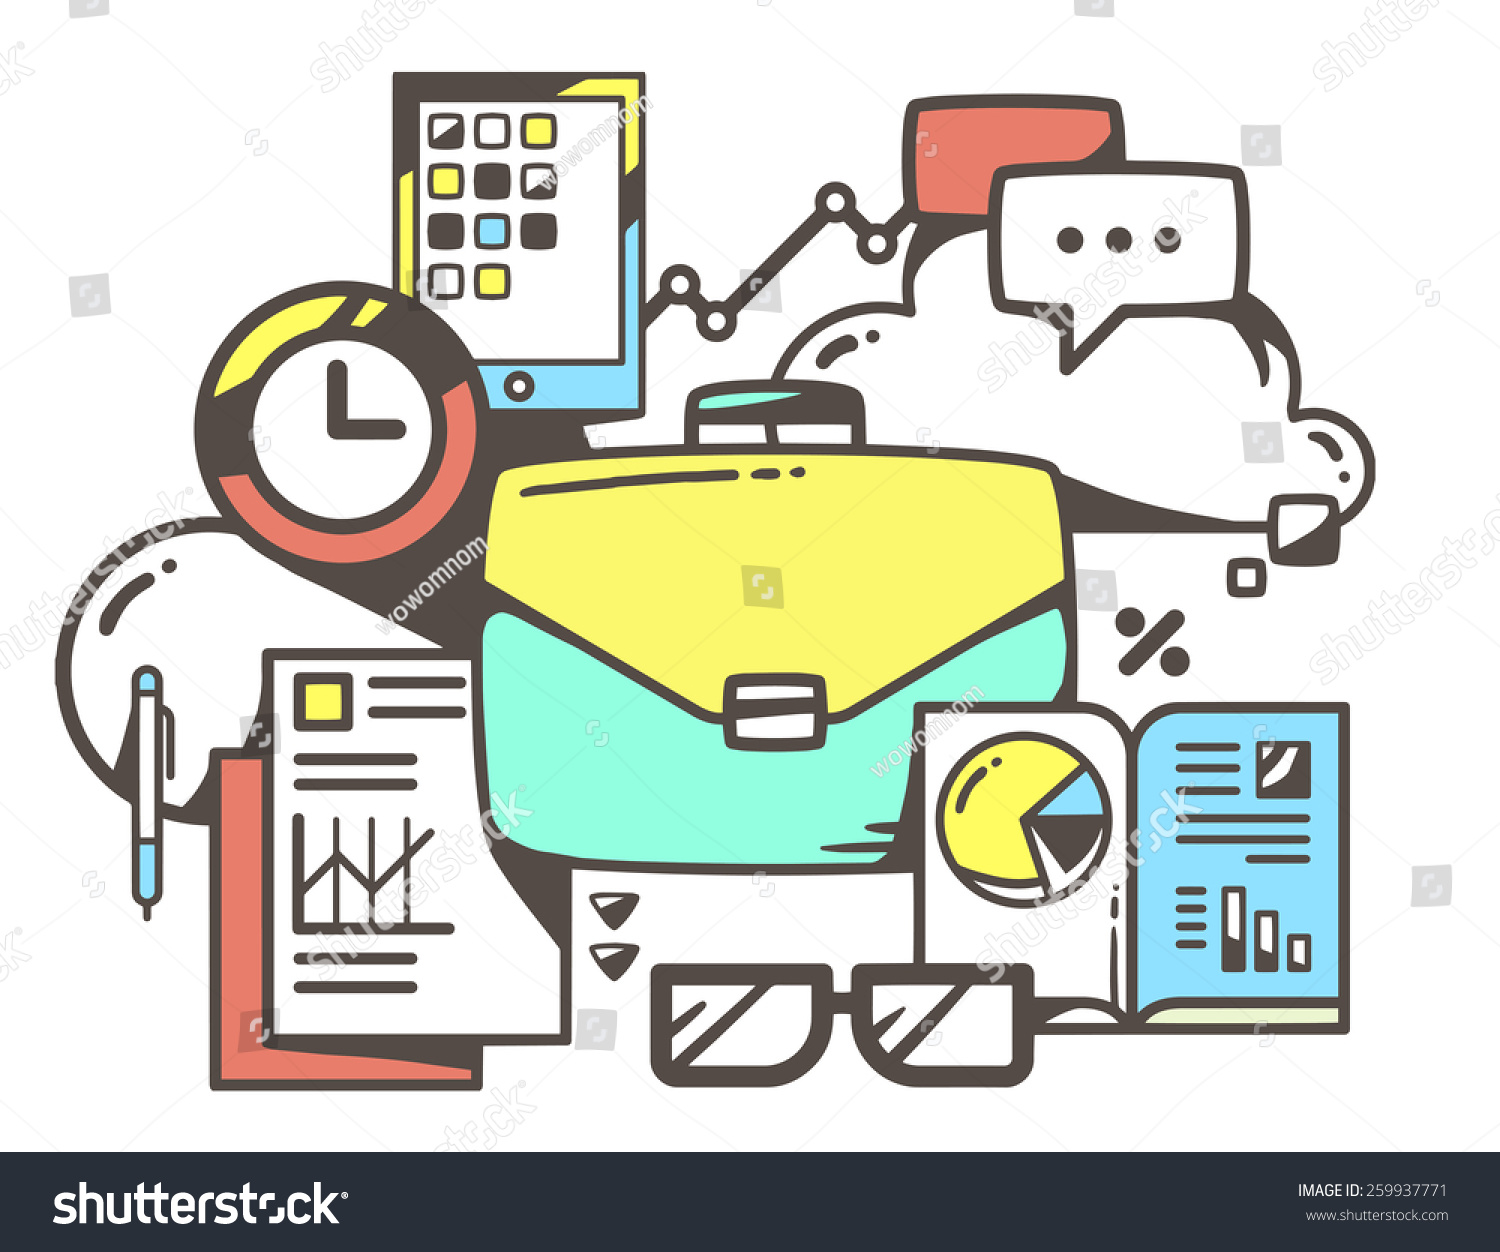 Vector Linear Illustration Of Green Business Case With Office Documents On White Background Color Hand